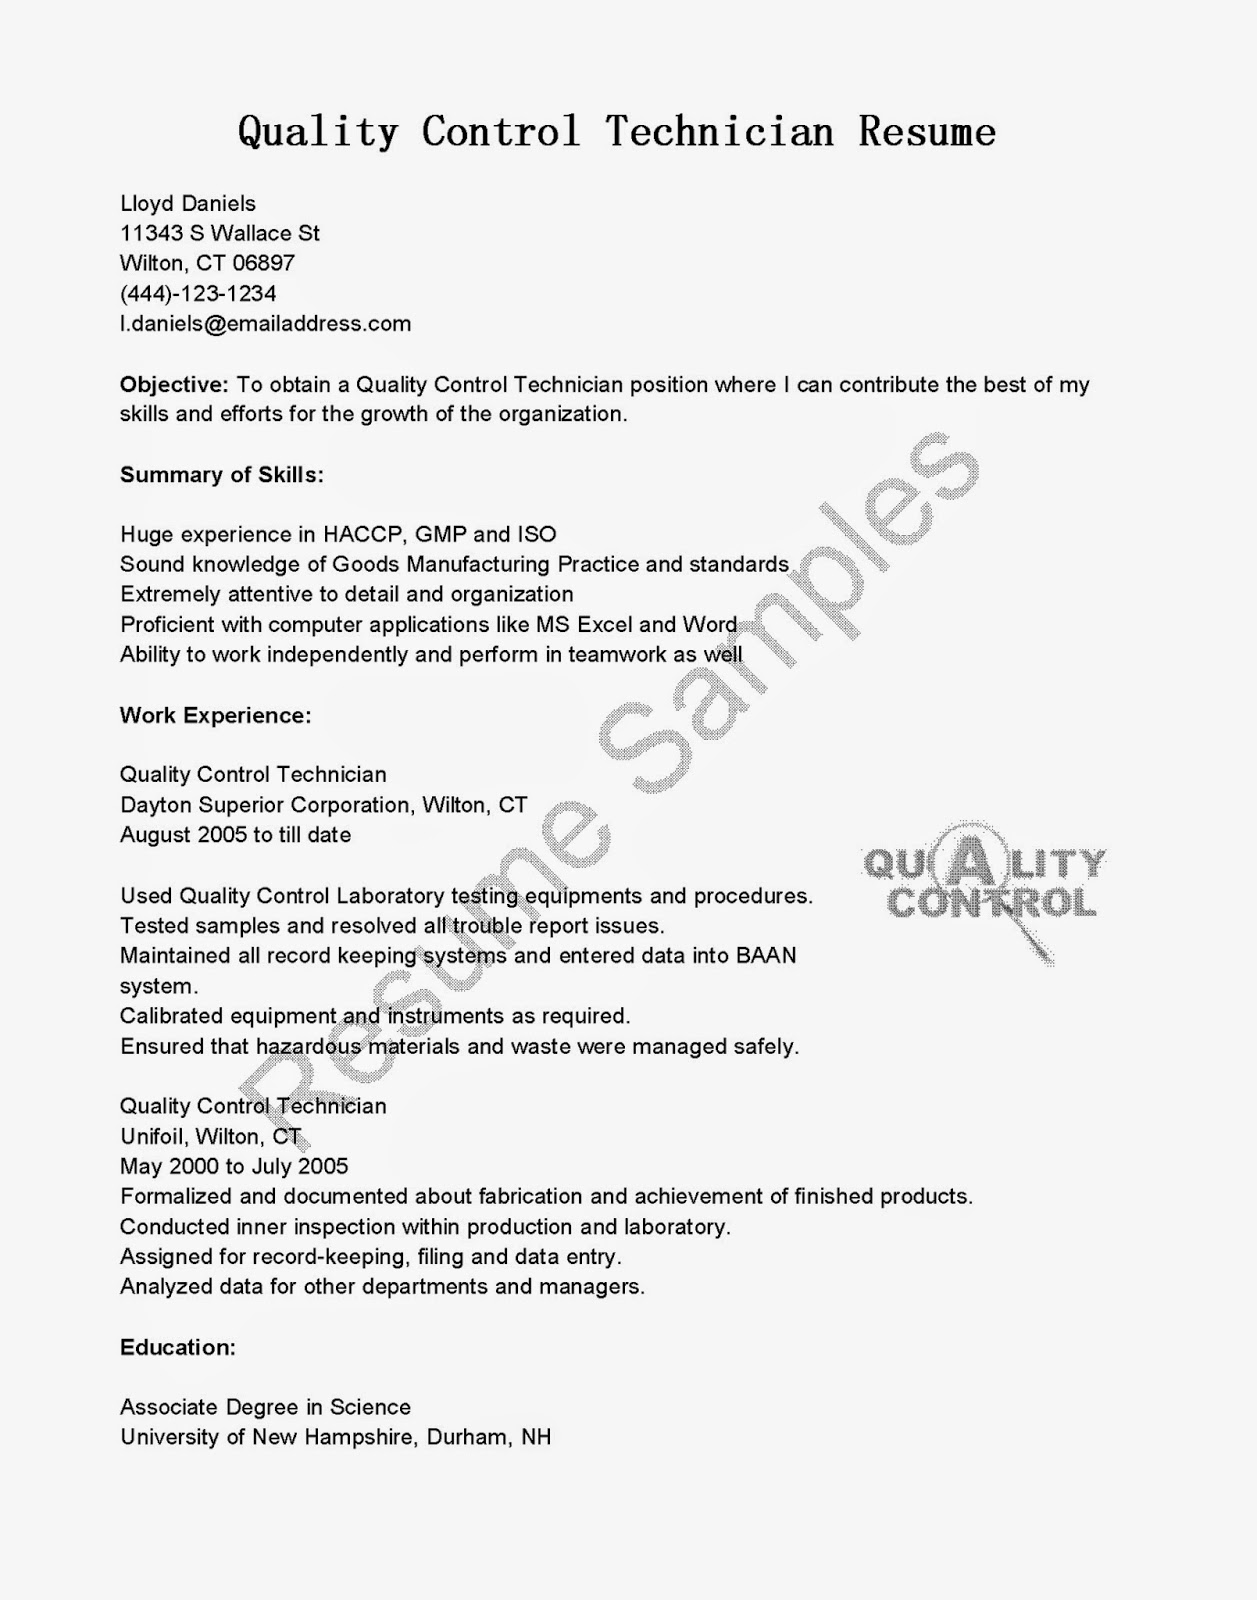 Cover Letter For Quality Technician Job